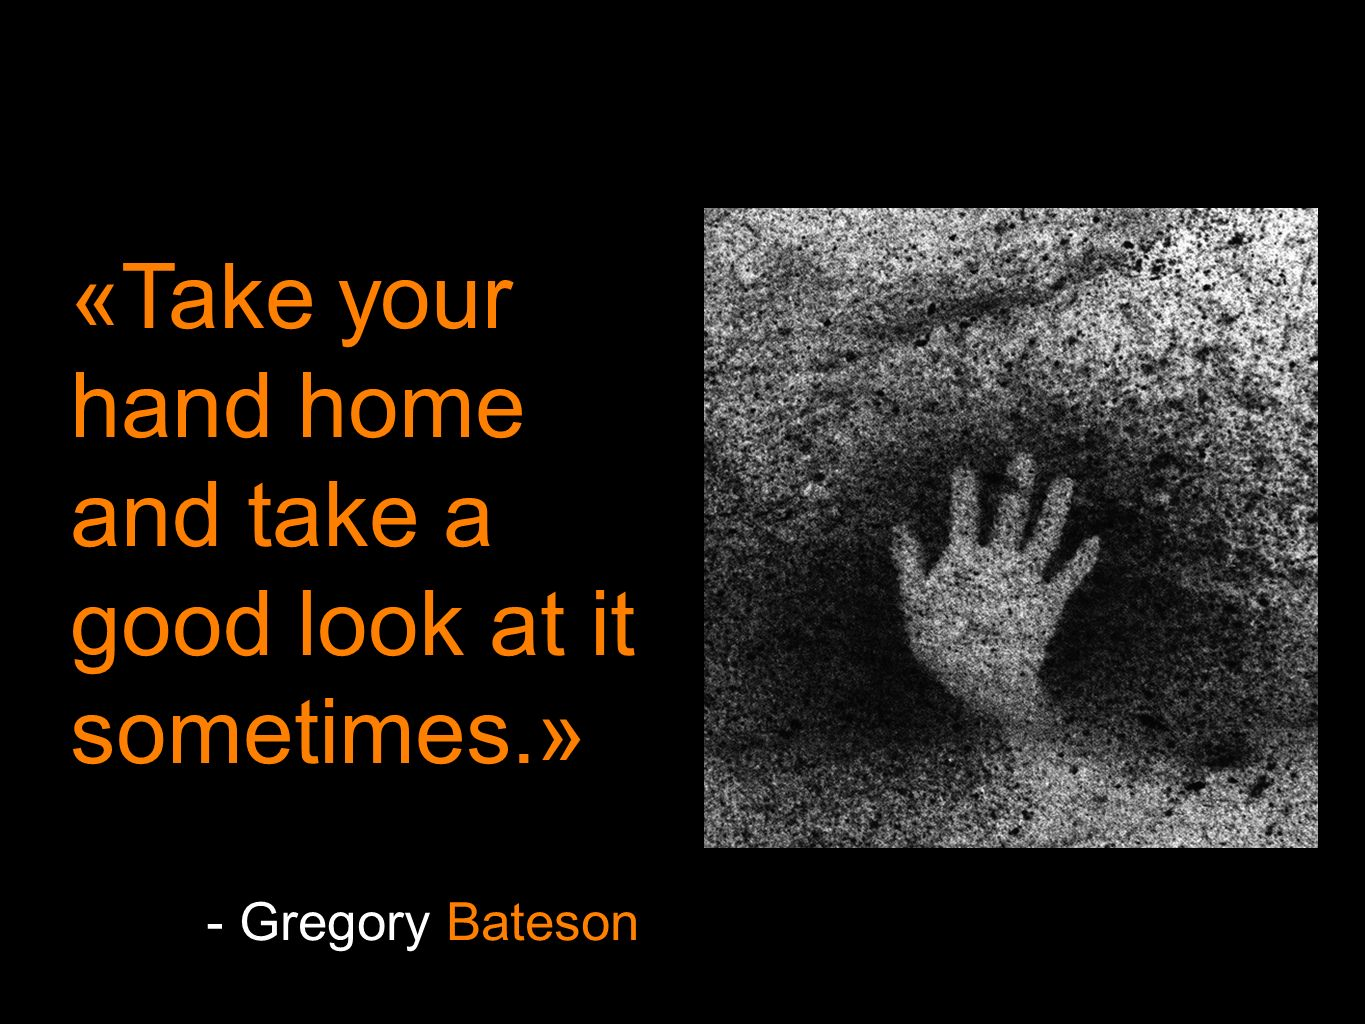 «Take your hand home and take a good look at it sometimes.» - Gregory Bateson